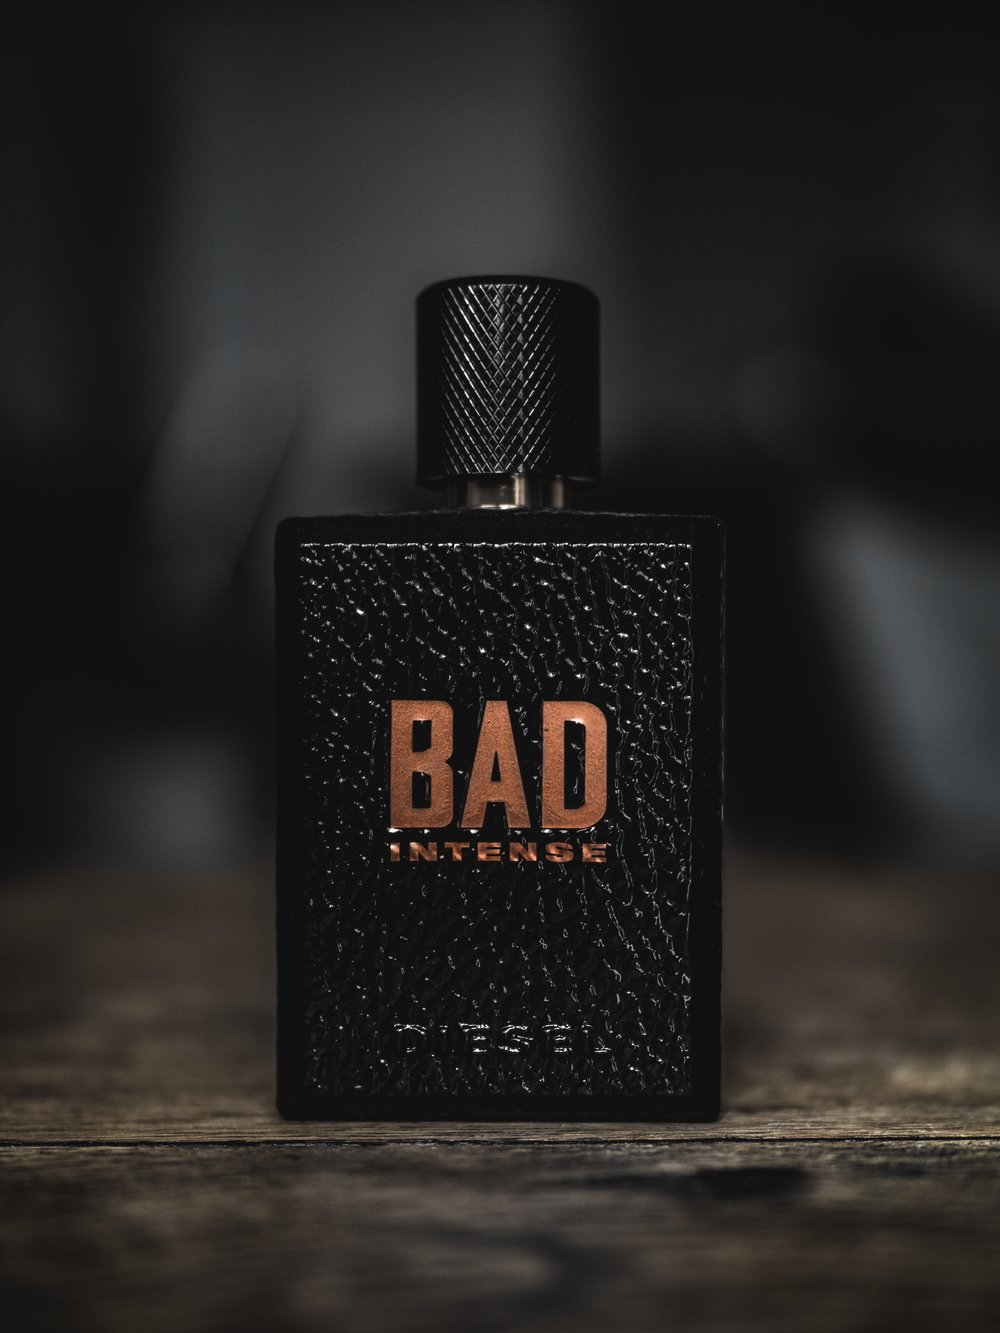 Diesel Bad Intense Designer Fragrance Review